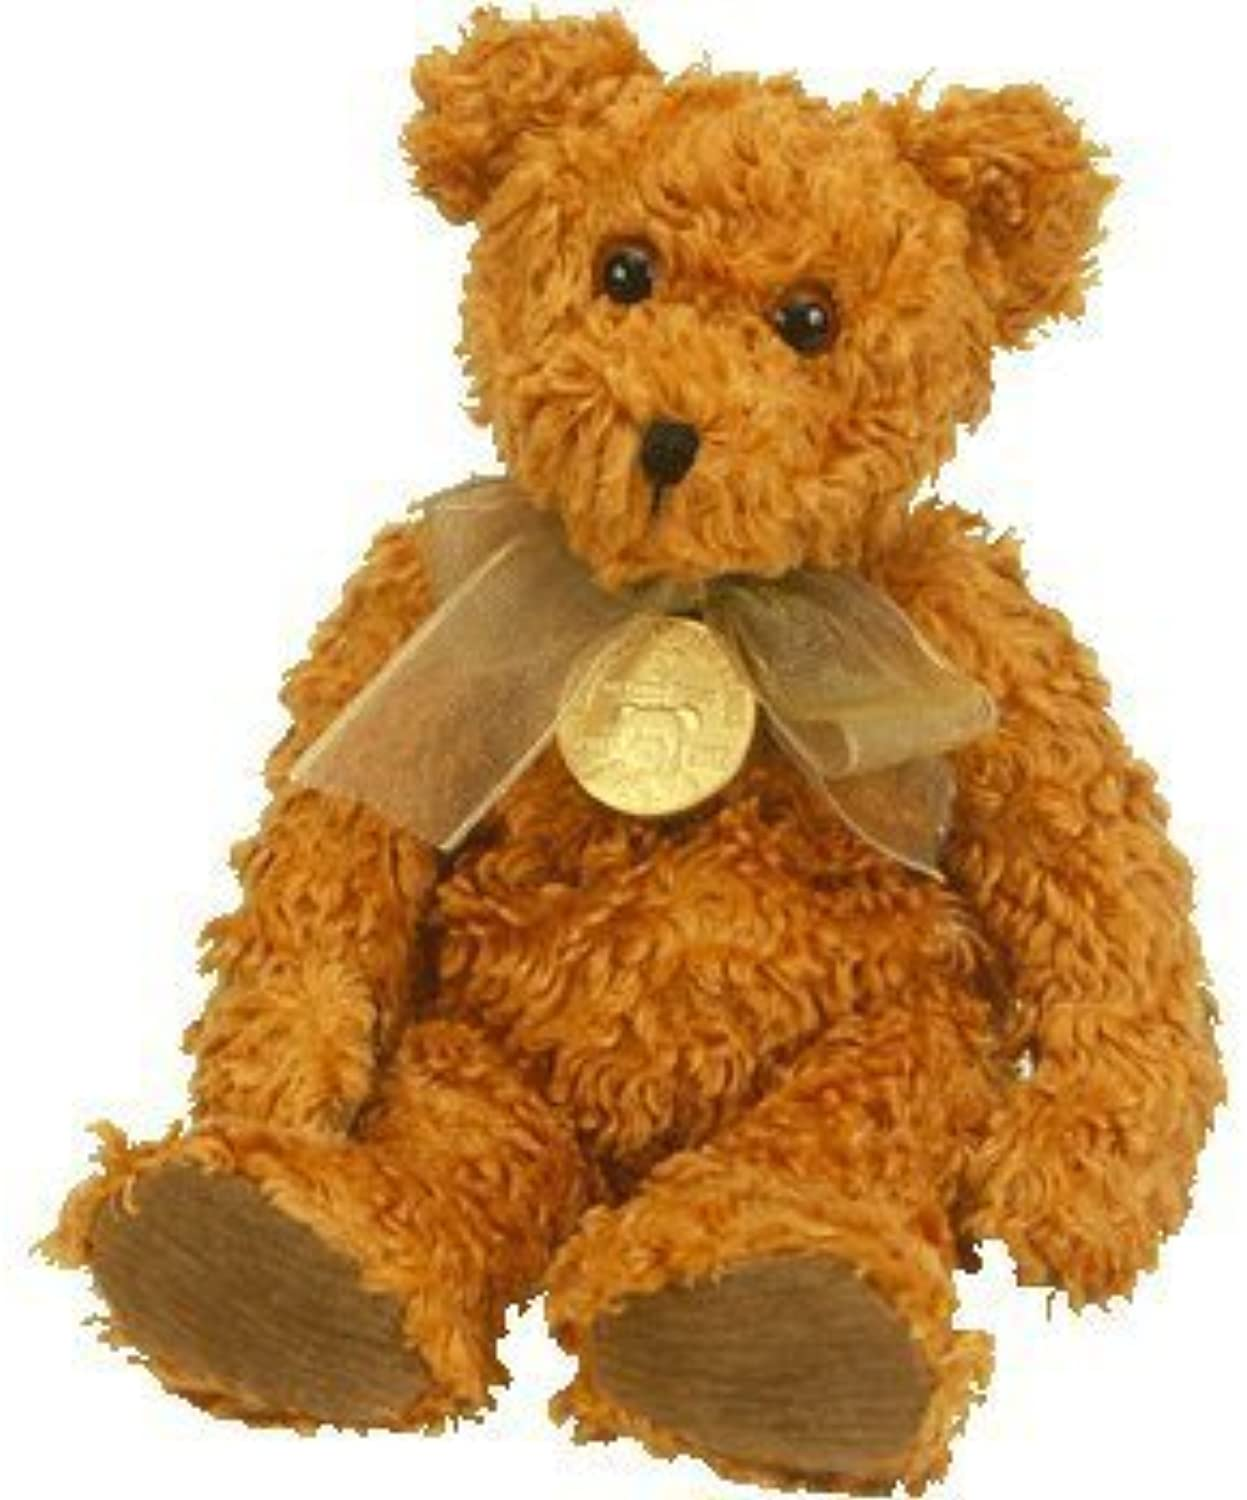 TY Beanie bambino - TEDDY the orso (100th Anniversary Teddy) by Ty